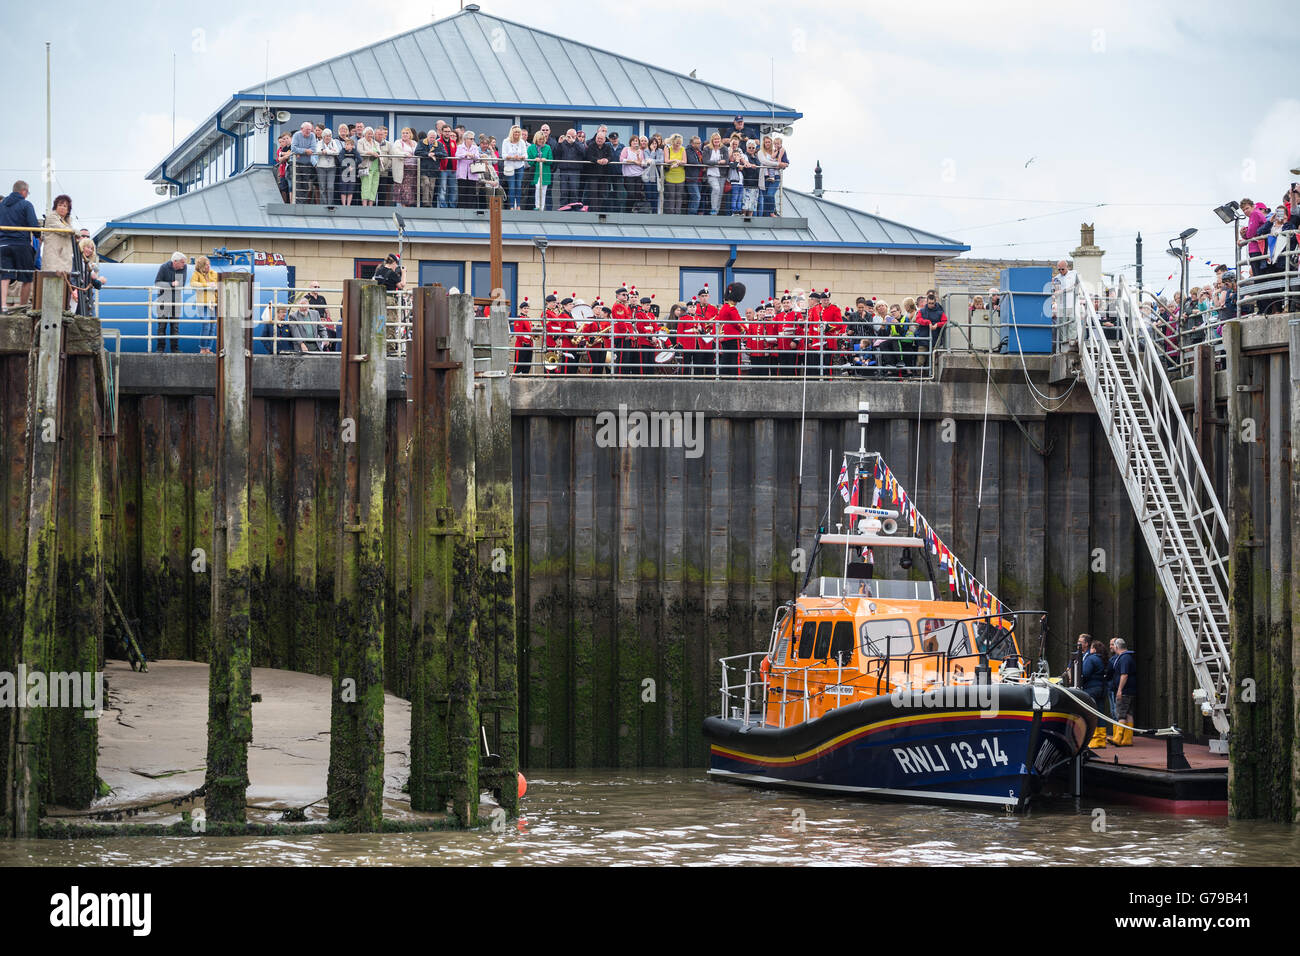 Fleetwood, UK. 26th June, 2016. The Kenneth James Pierpoint, a new state-of-the-art Shannon Class lifeboat, arrives - Stock Image